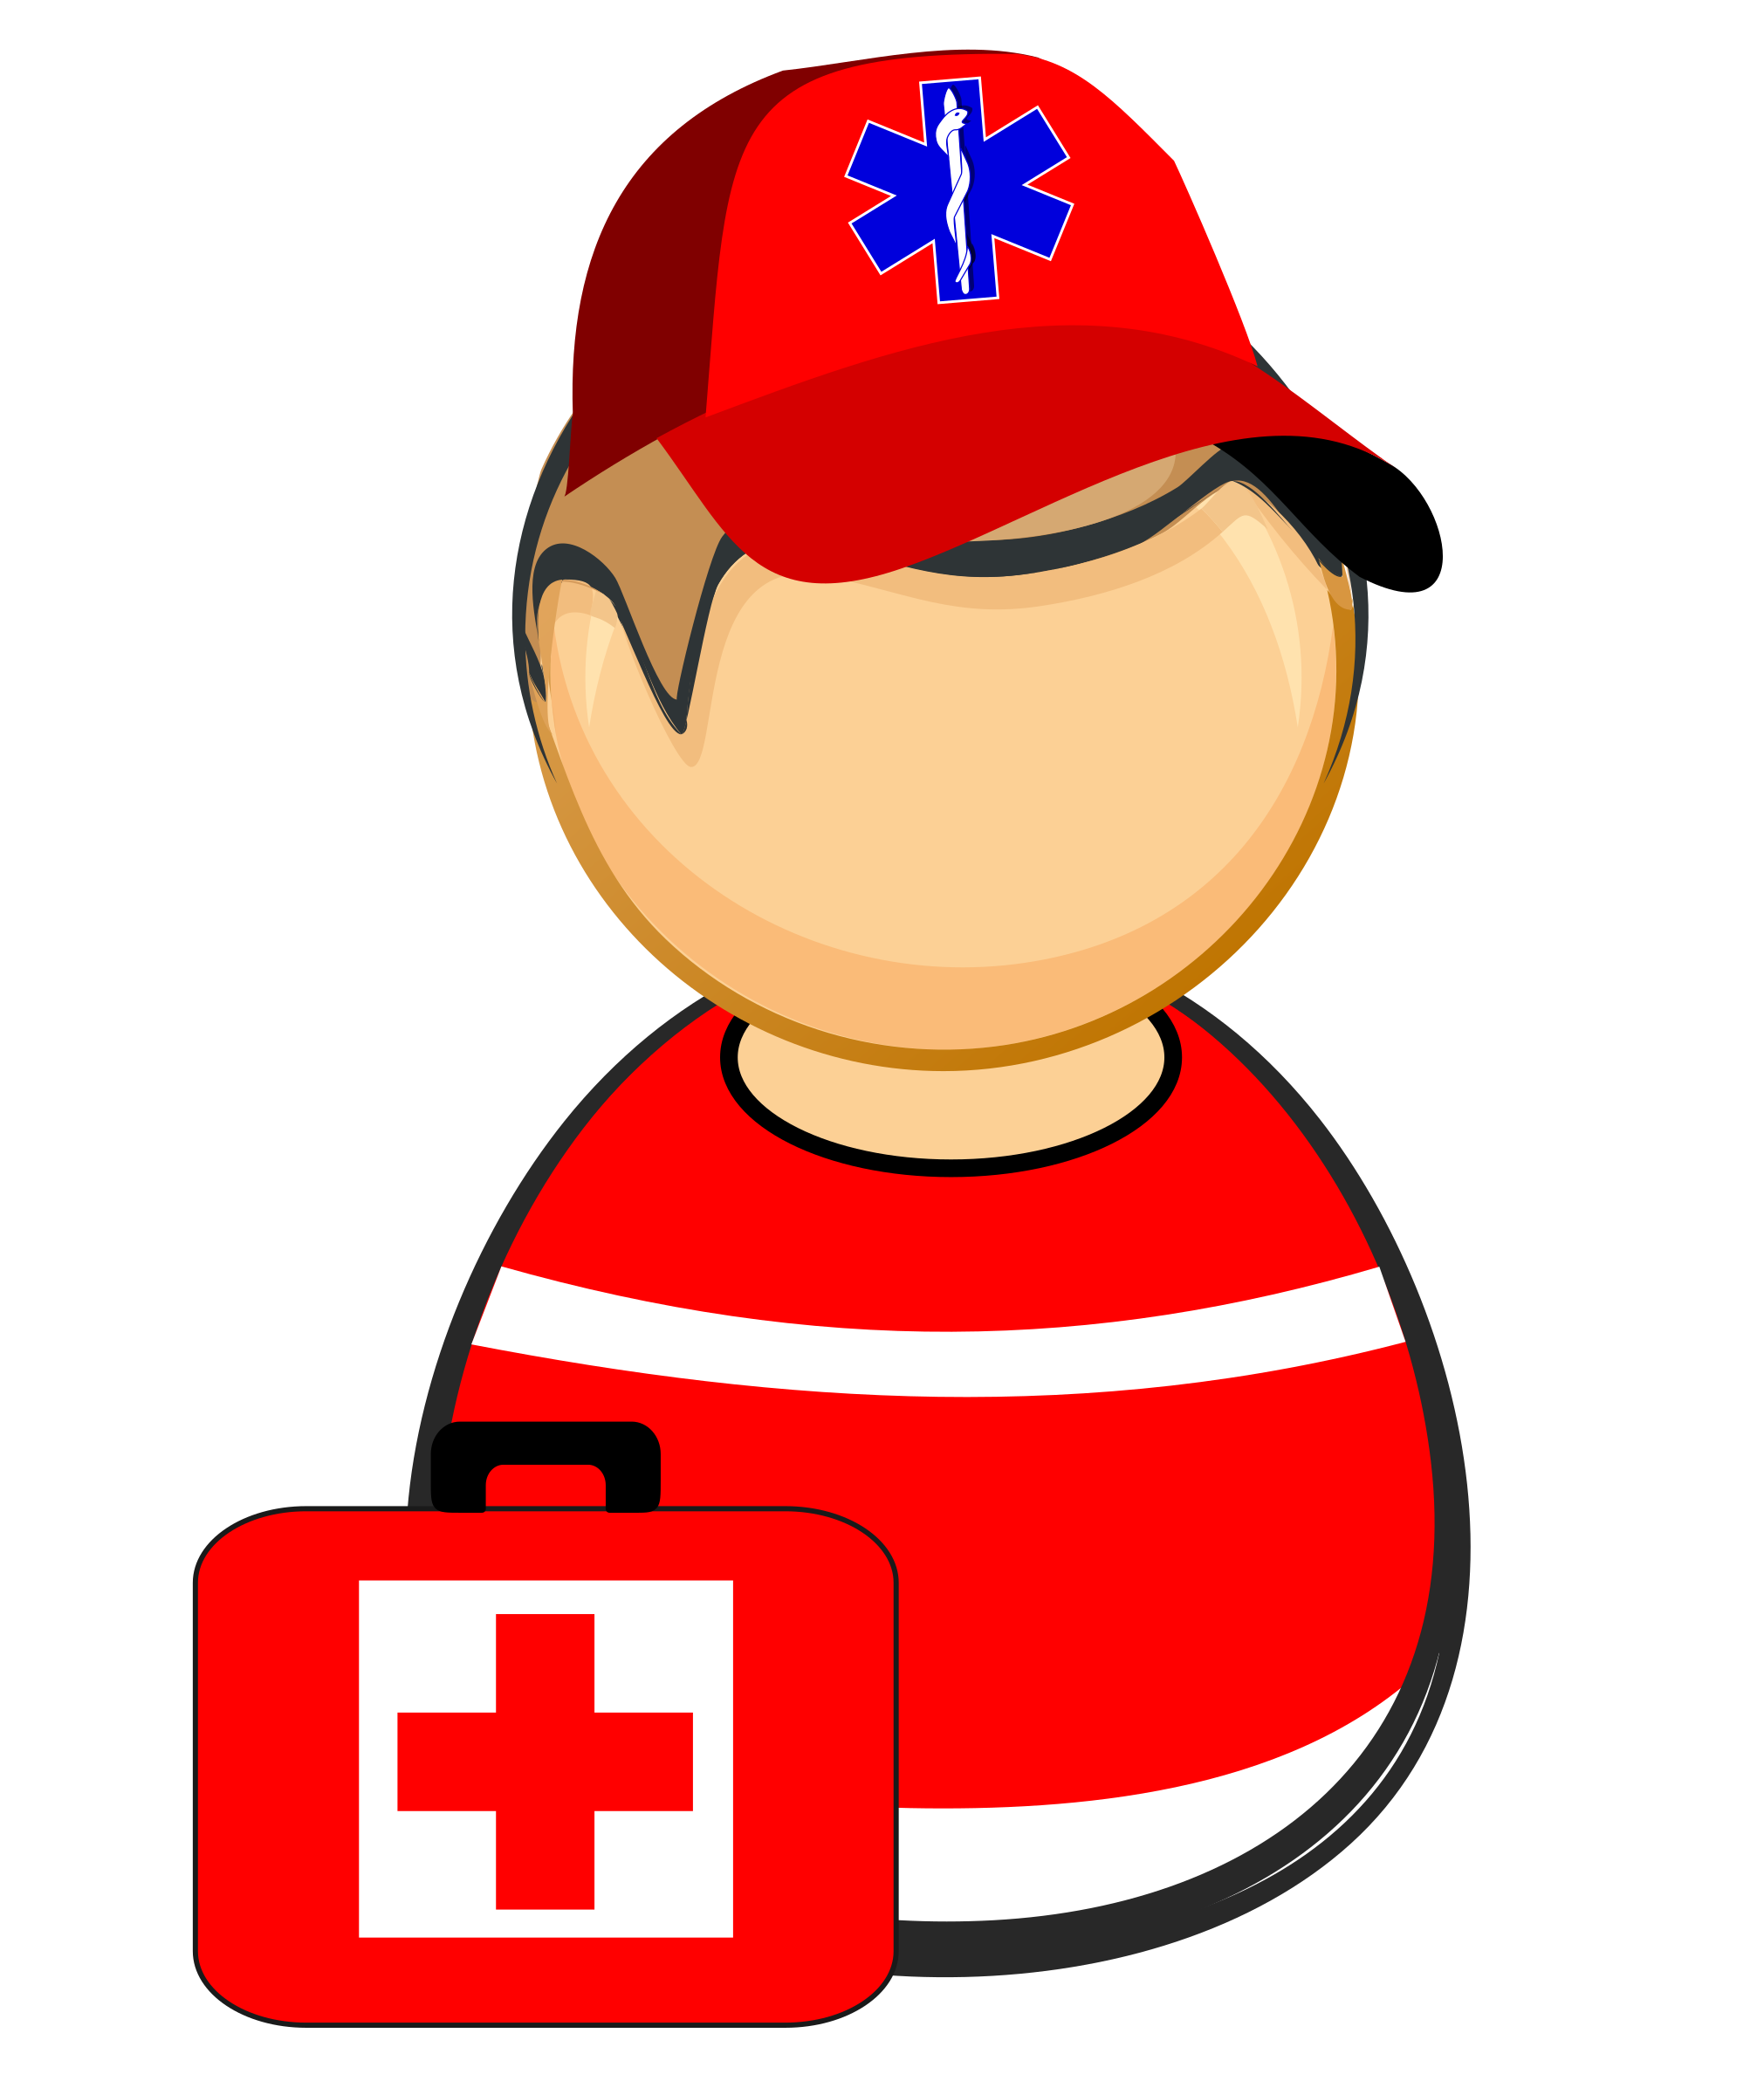 Red Cross clipart paramedic First First Clipart responder paramedic